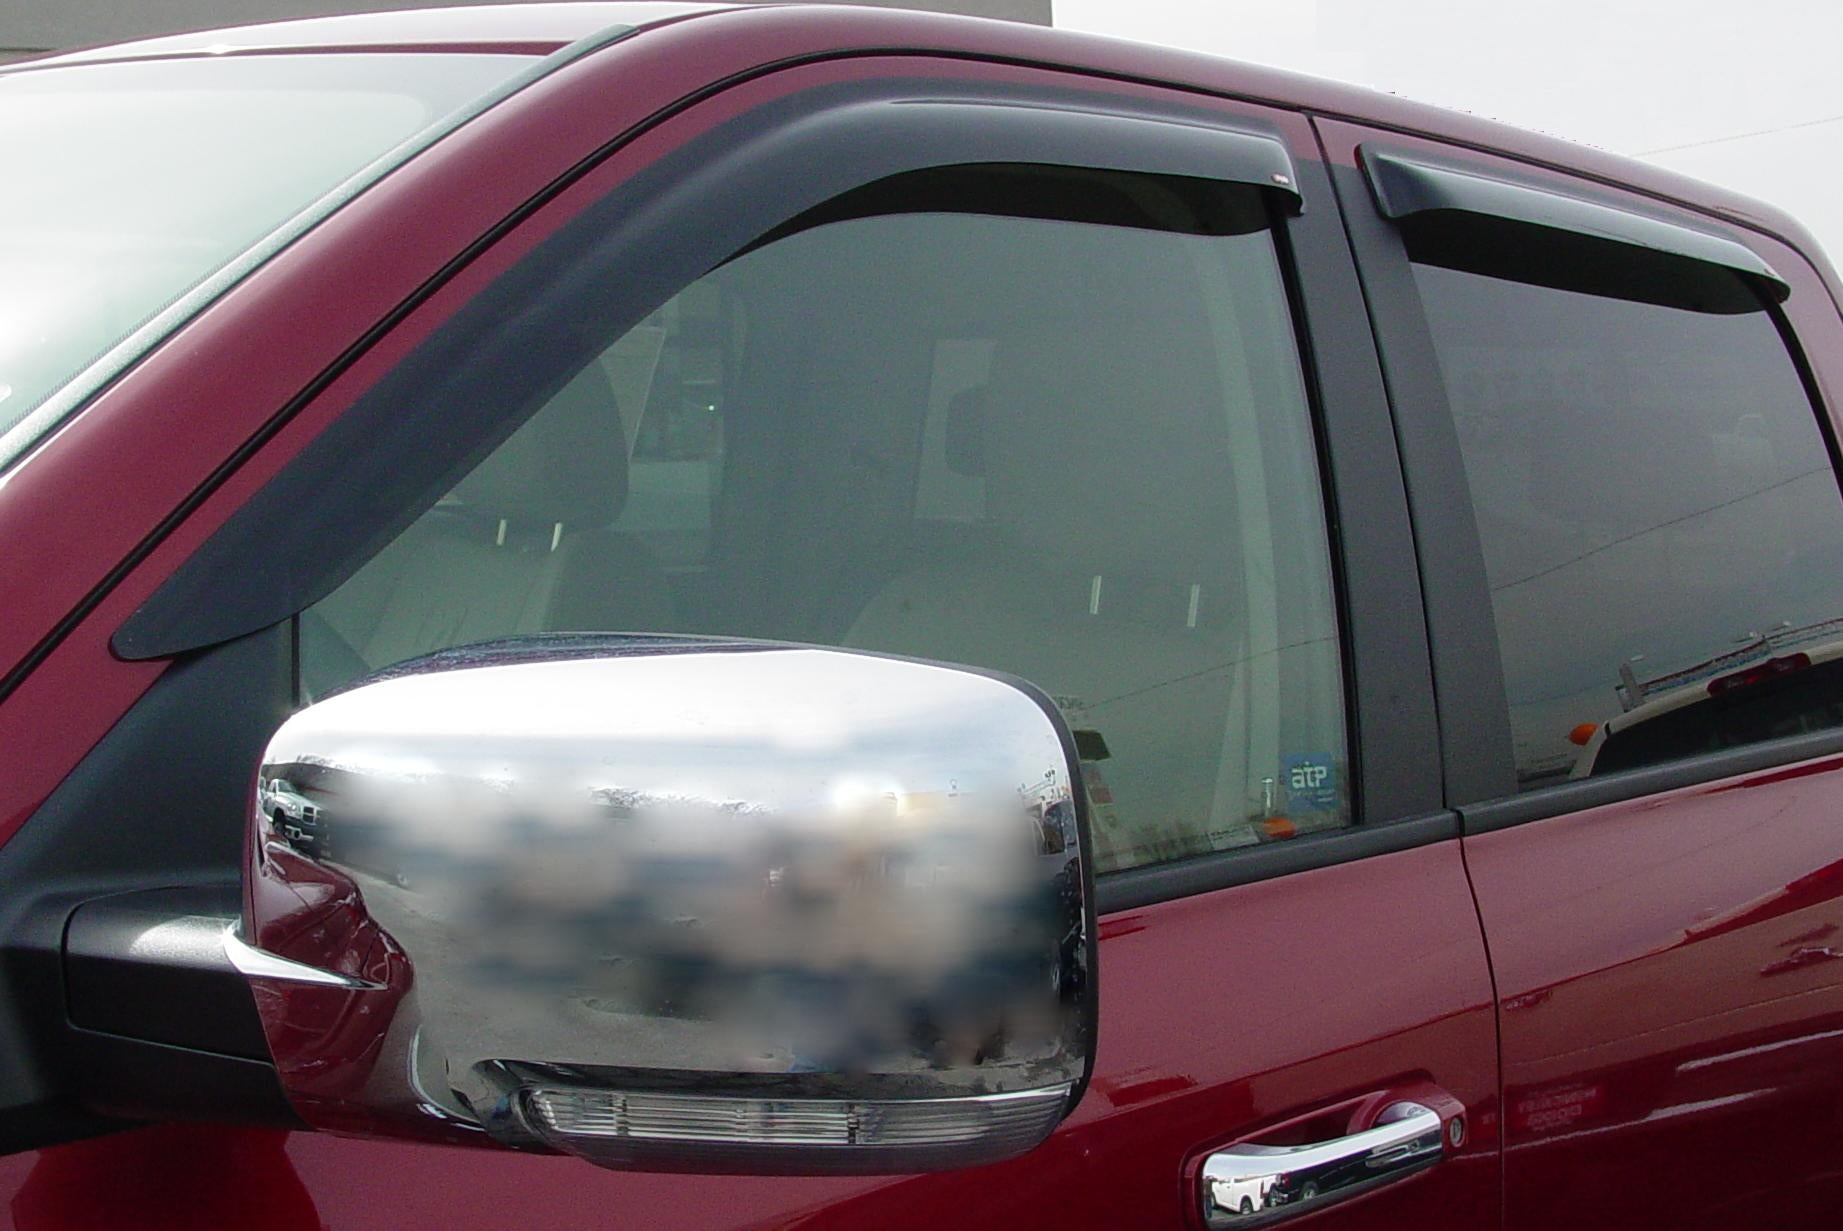 2010 Chrysler PT Cruiser Slim Wind Deflectors